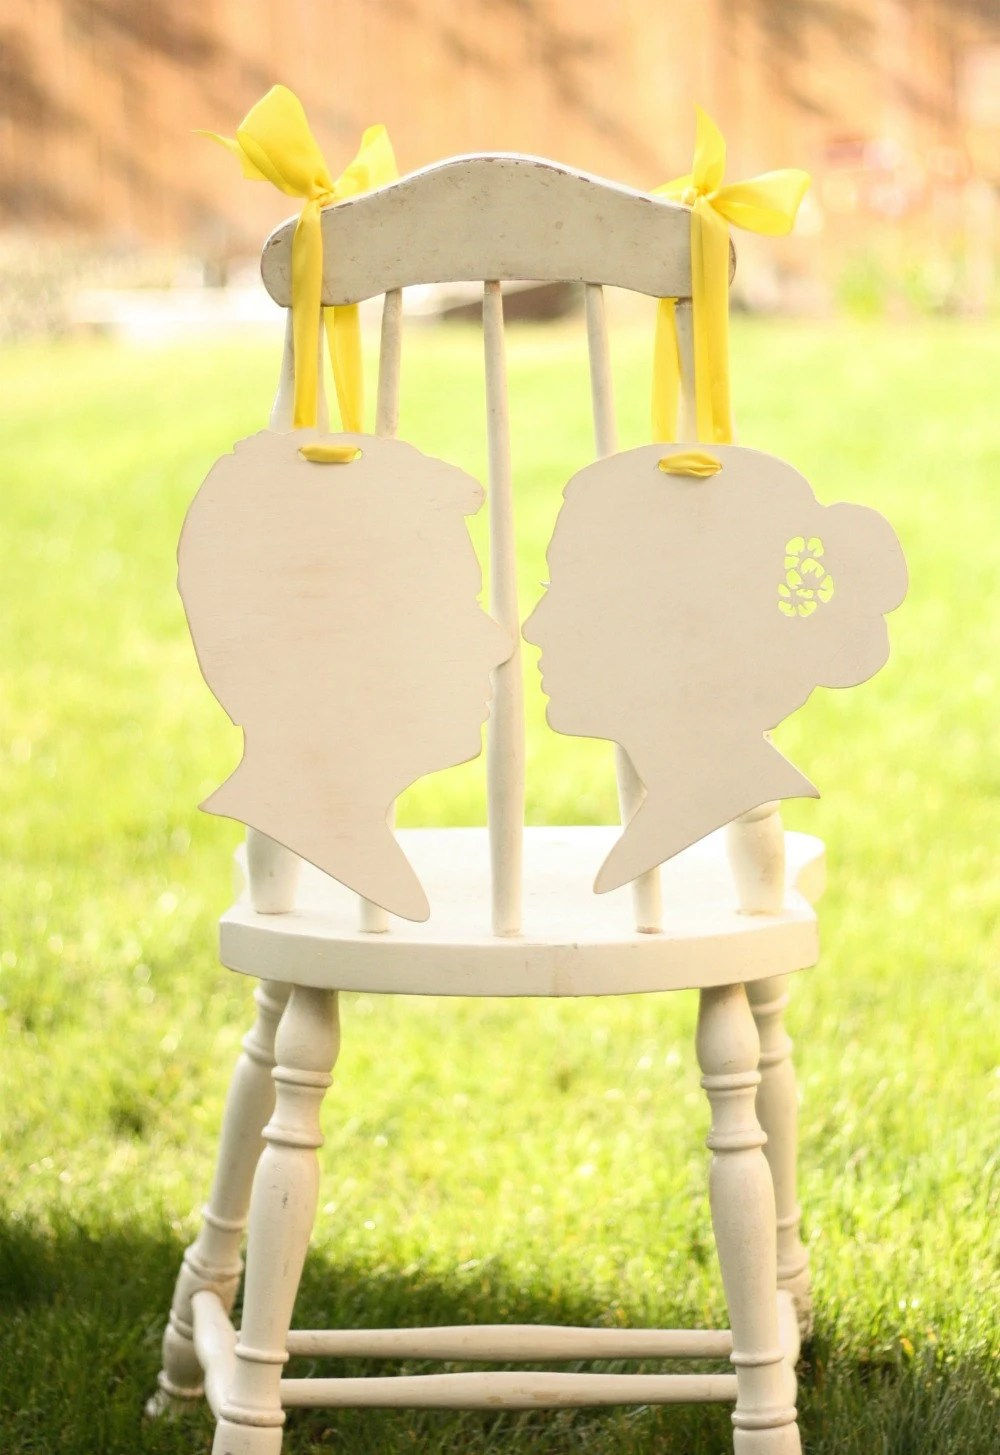 Bride and Groom Chair Hangers - Custom Silhouettes made from your photos by Simply Silhouettes